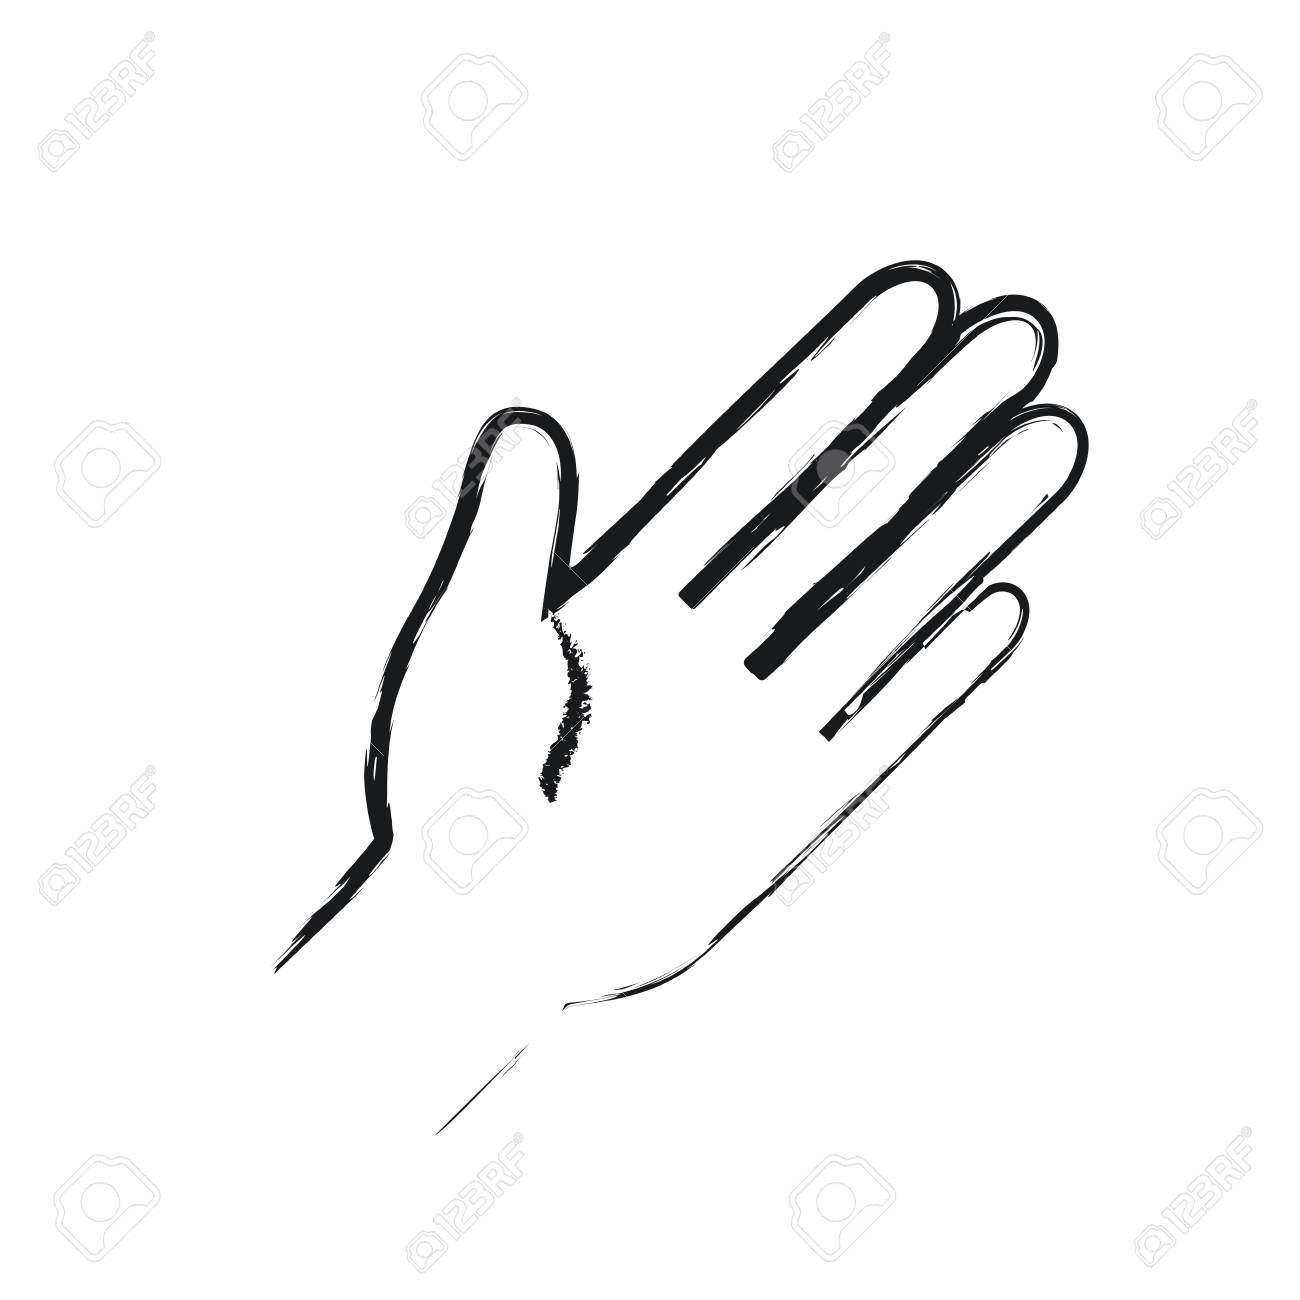 Blurred Silhouette Front View Palm Of Hand In Greeting Symbol